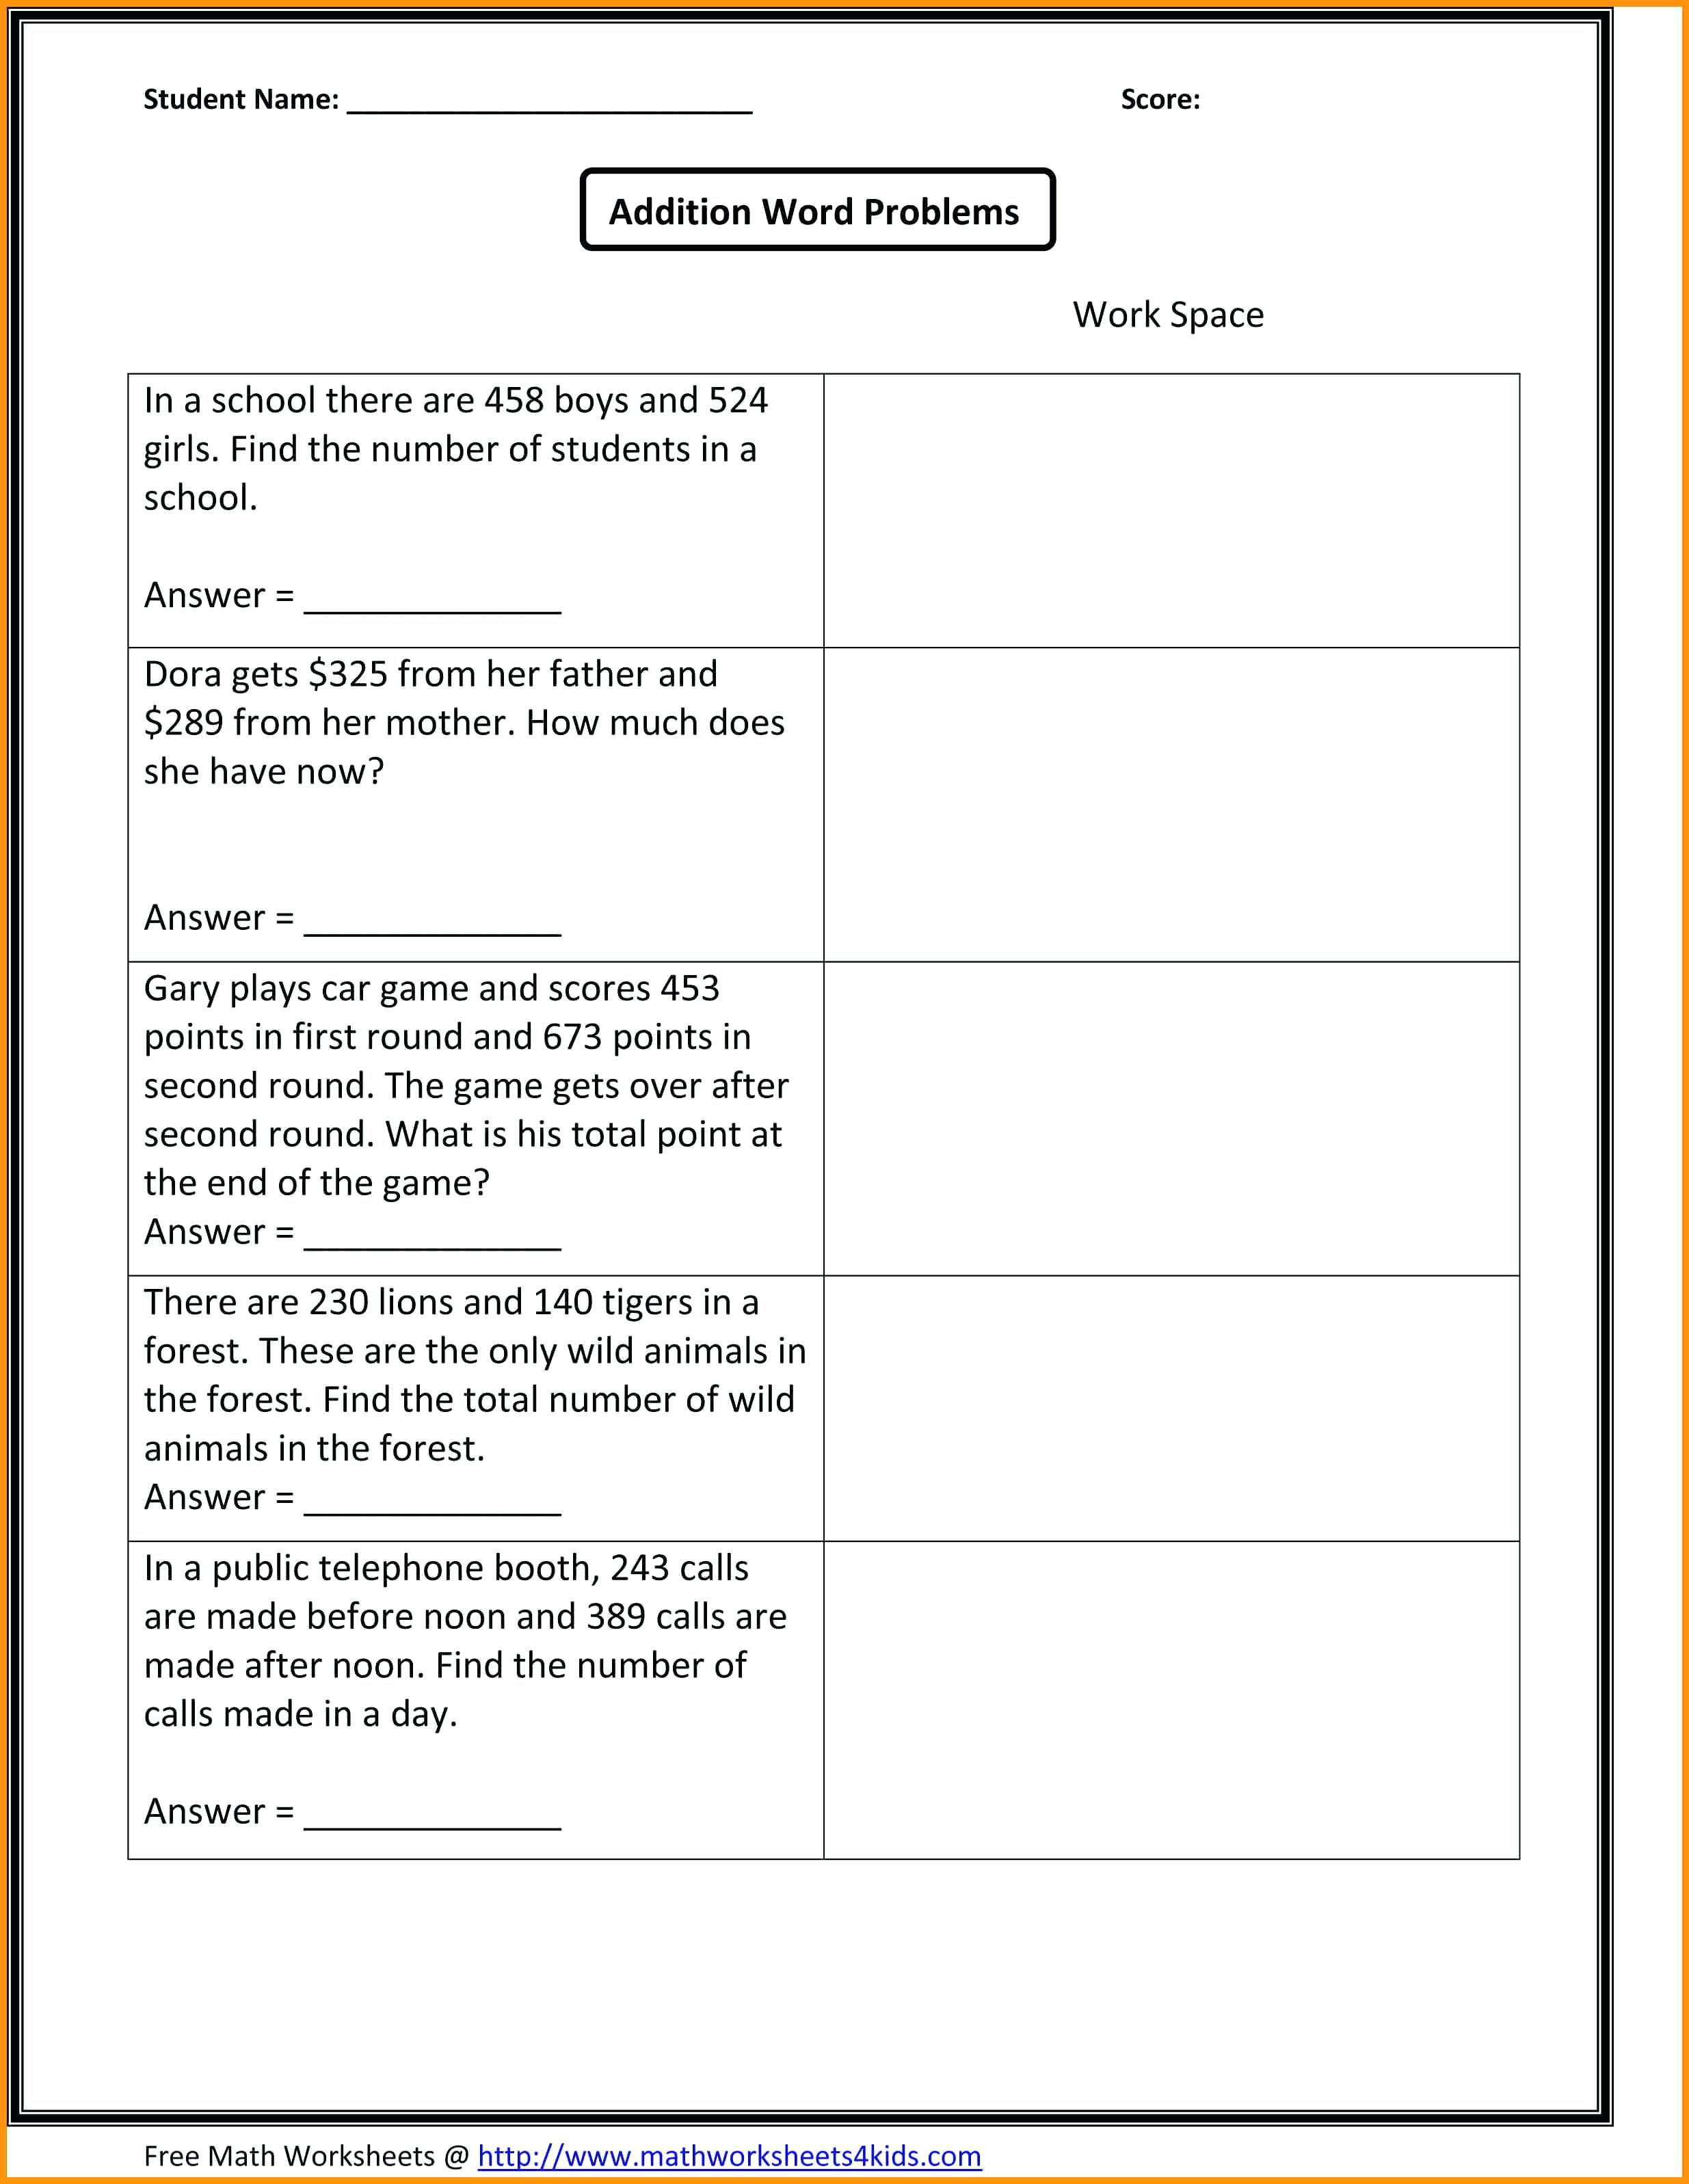 39 Simple First Grade Math Worksheets For You Https Bacamajalah Com 39 Simple First Grade Math 3rd Grade Math Worksheets Math Worksheets Math Word Problems